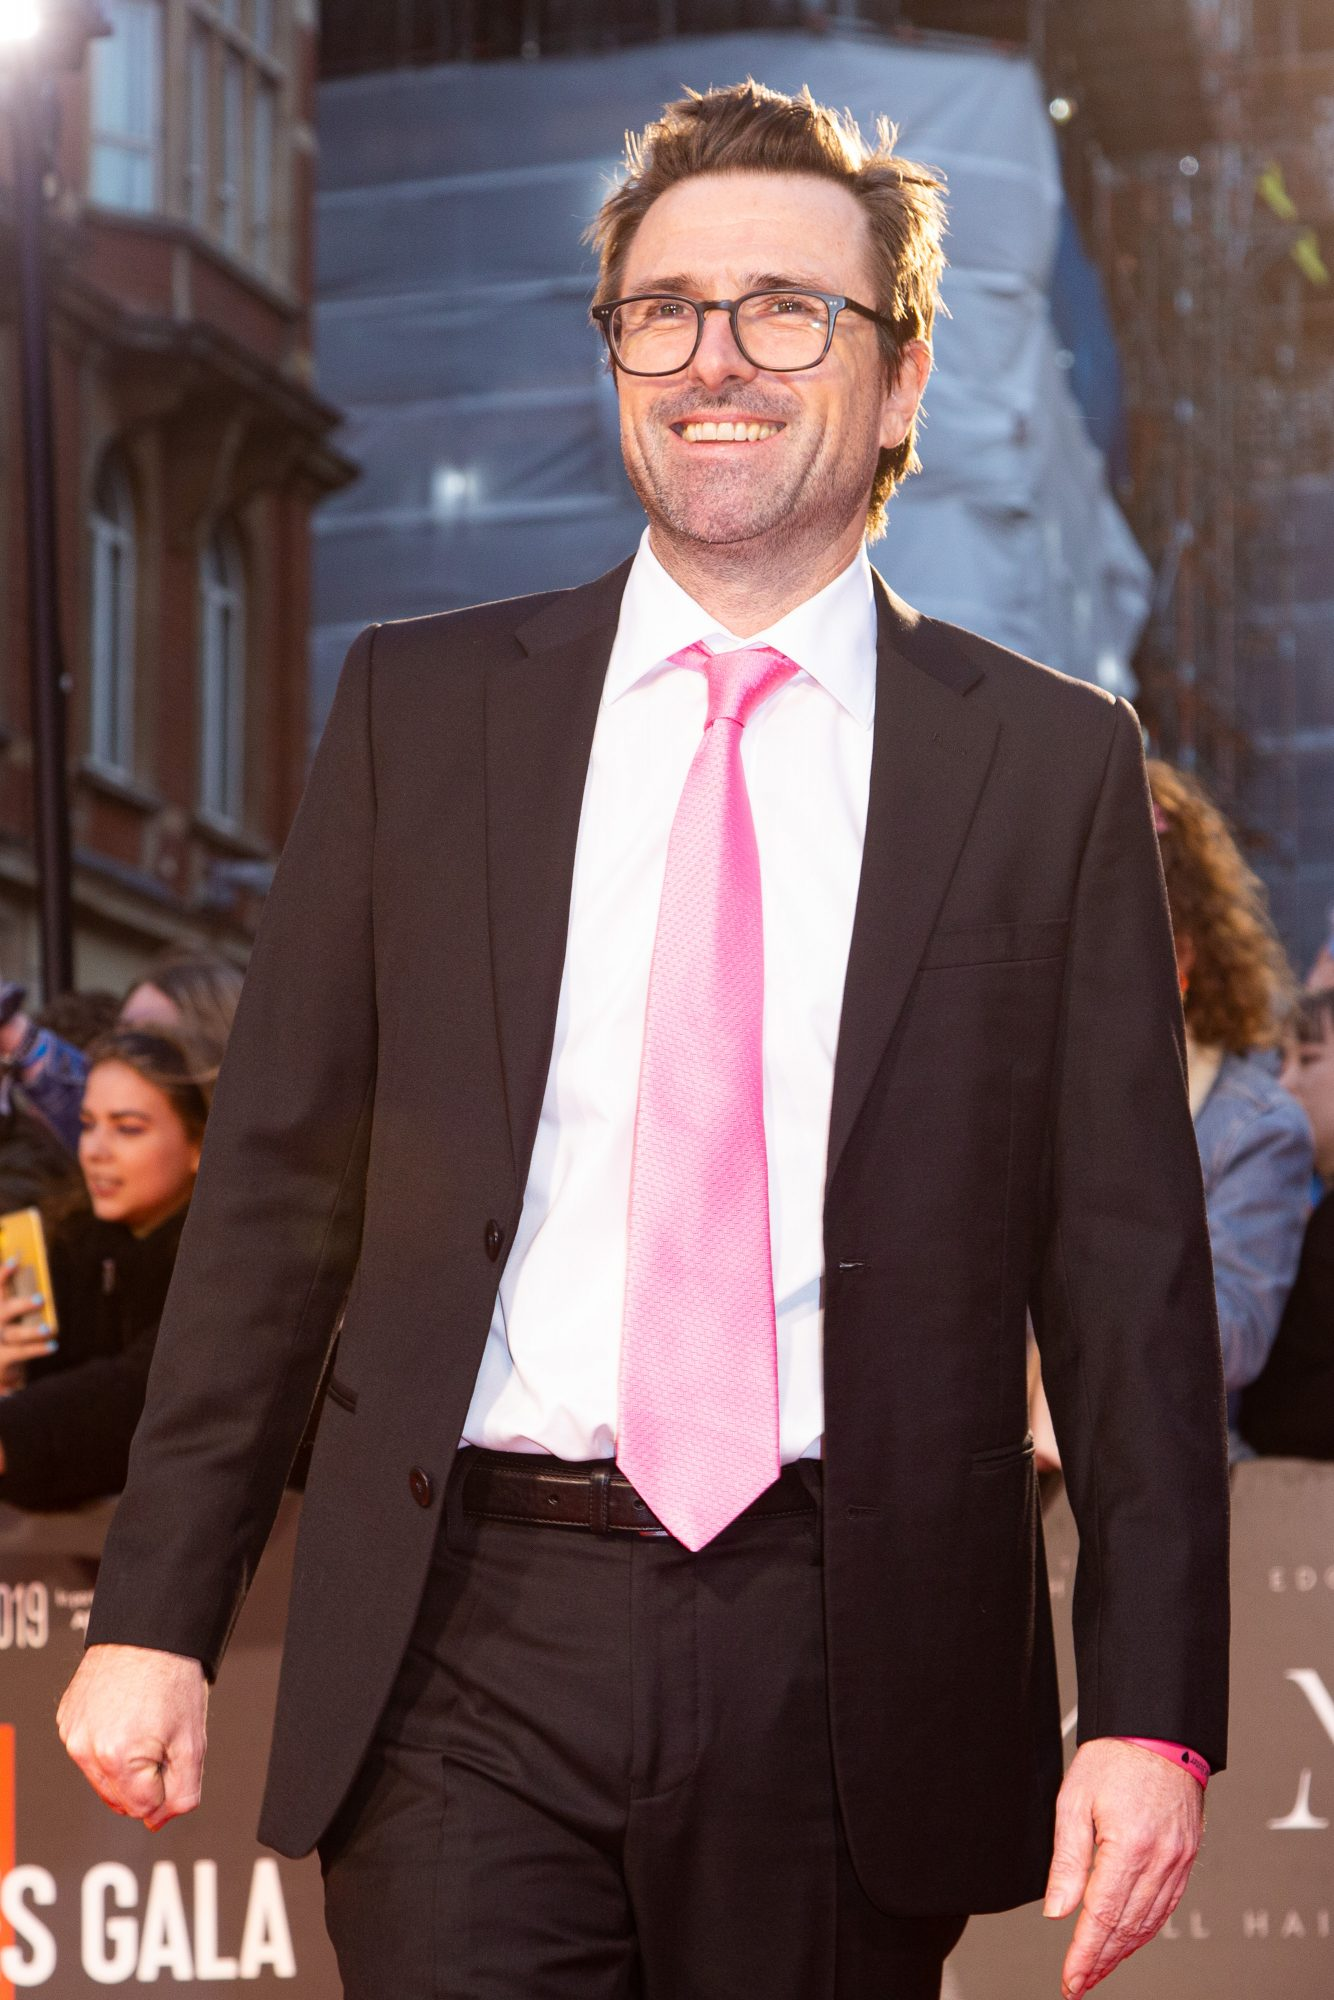 David Michiod at The King UK Premiere during the 63rd BFI London Film Festival at Odeon Luxe Leicester Square on 3rd October 2019.  Photos: Netflix